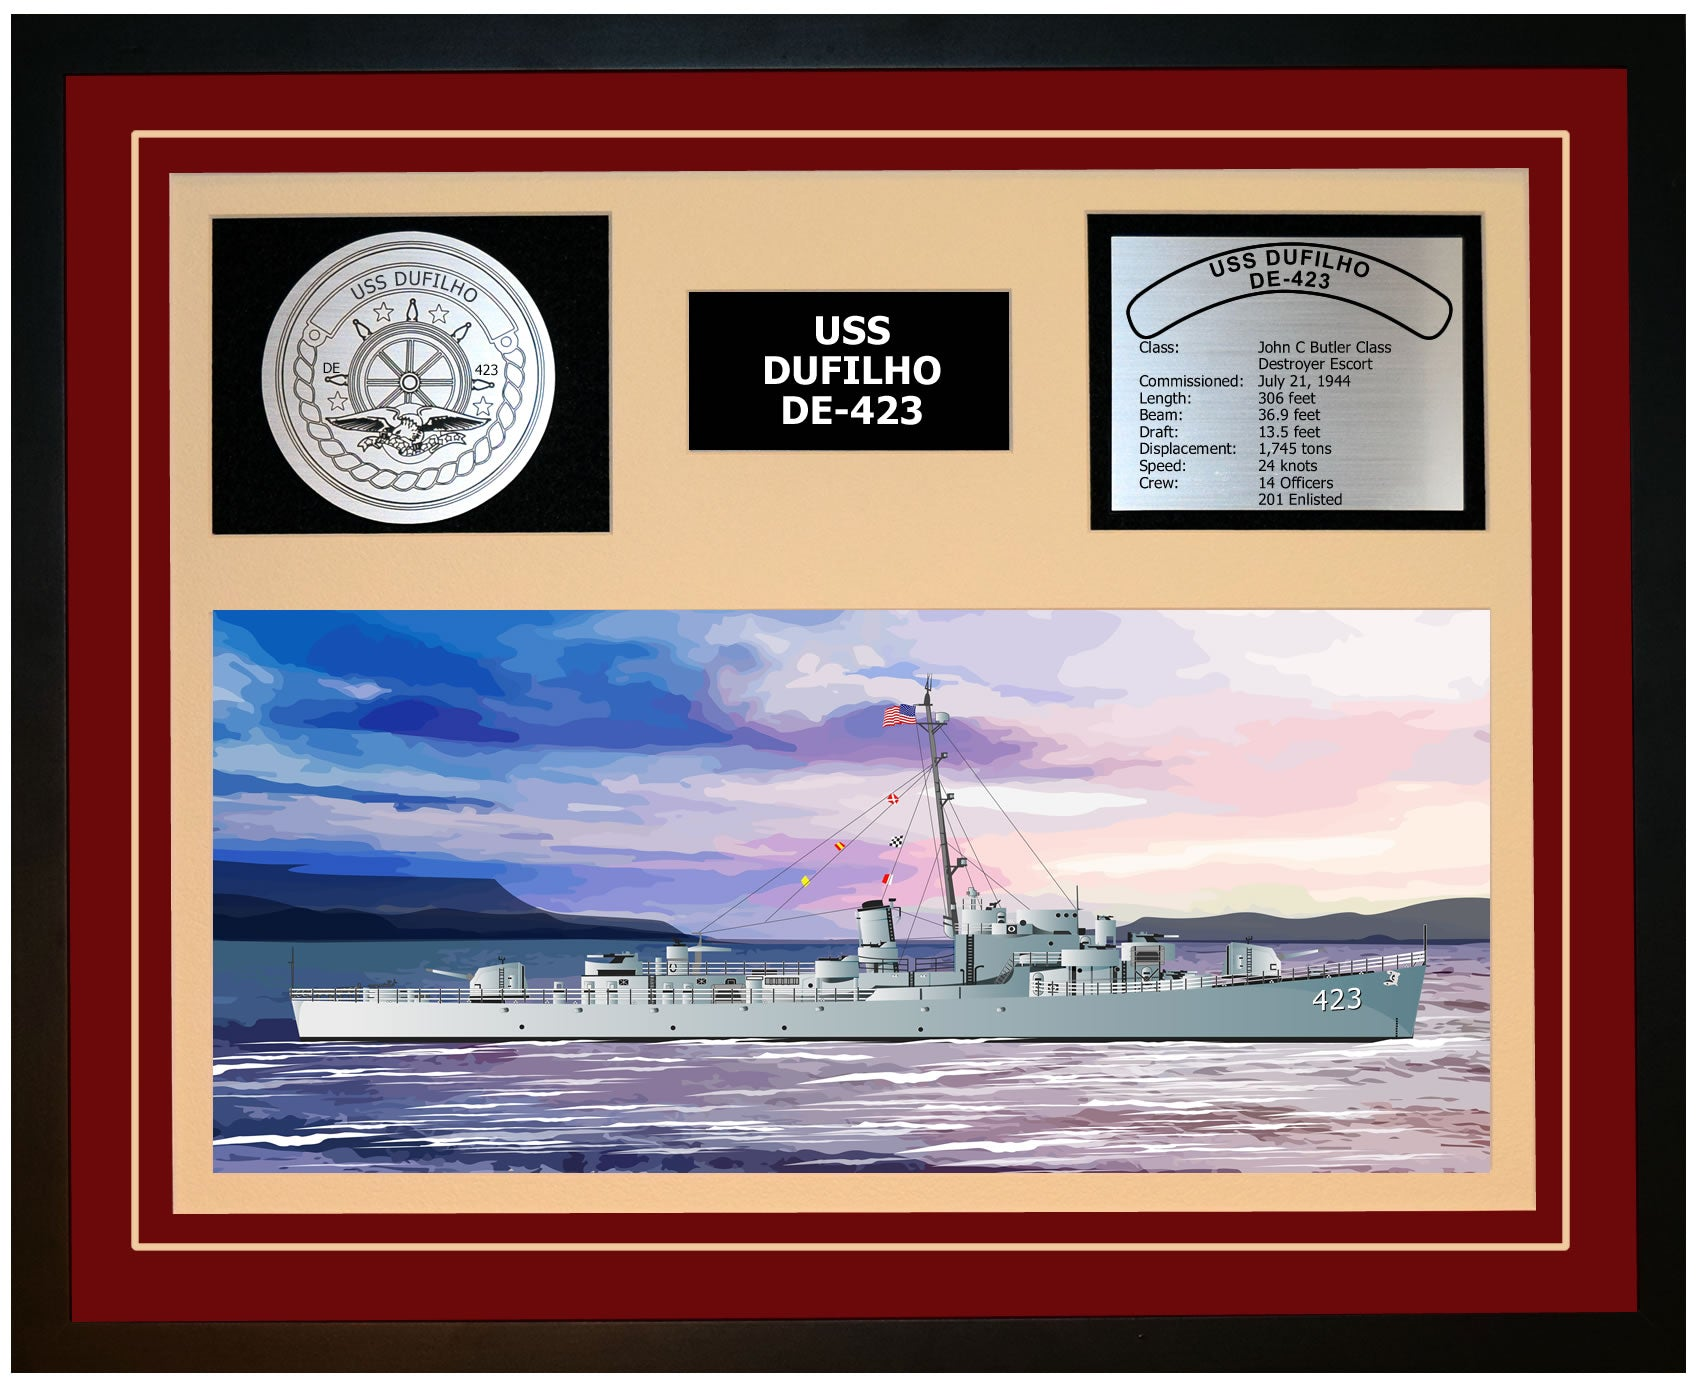 USS DUFILHO DE-423 Framed Navy Ship Display Burgundy